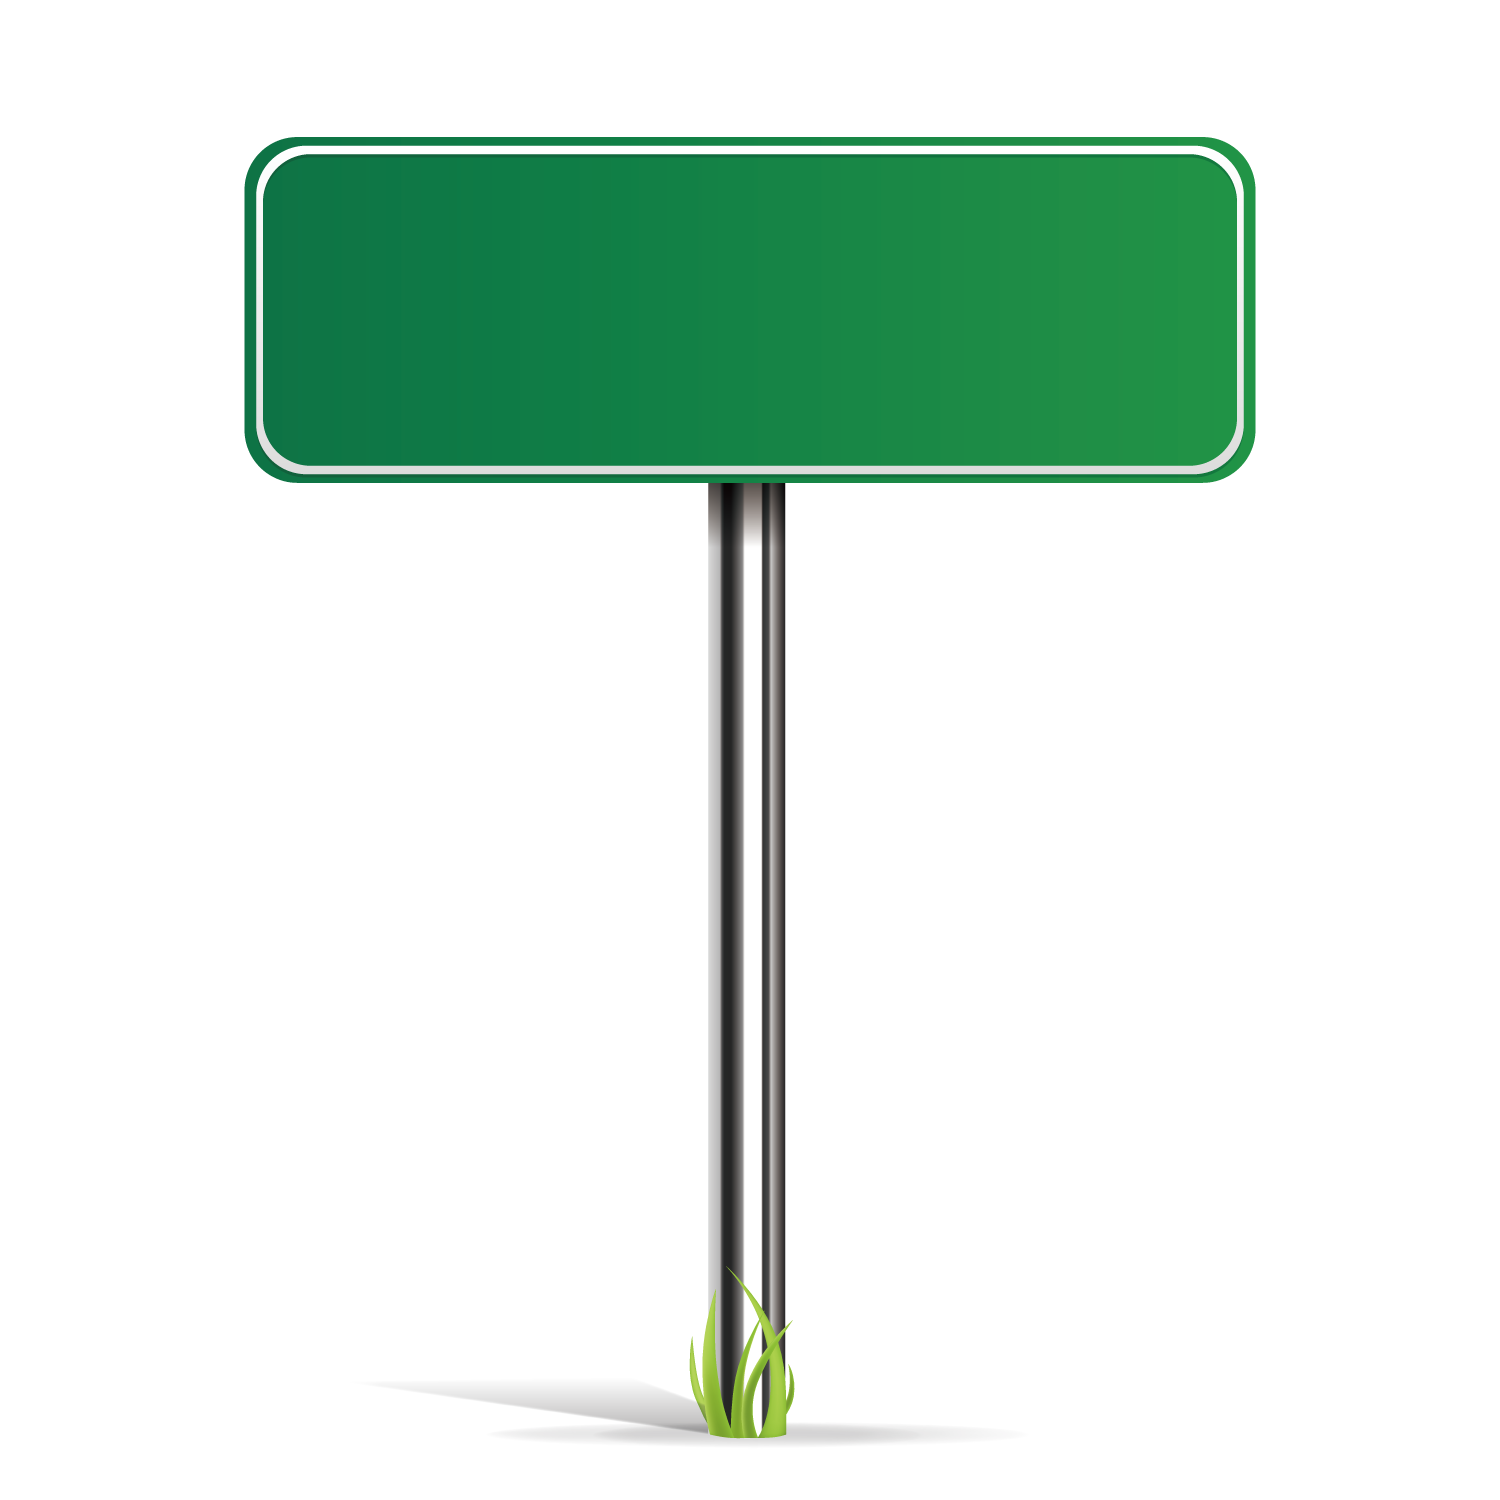 Green street sign png. Vector road transprent free